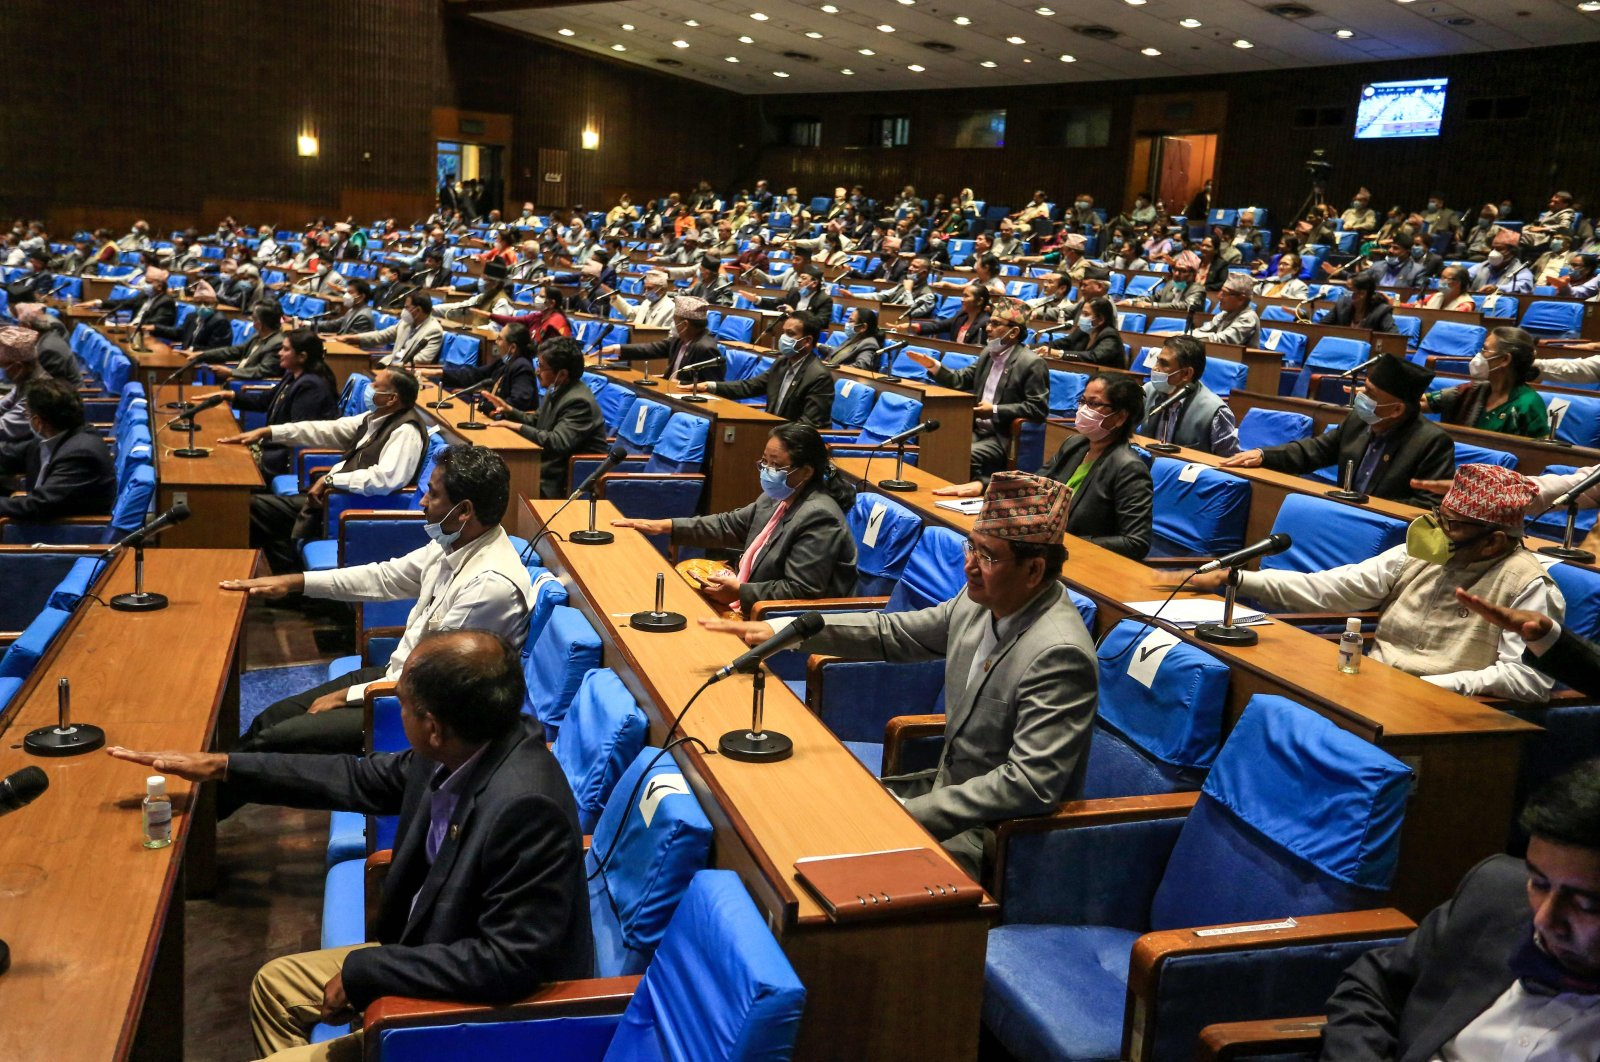 Nepal's House of Representatives members gesture as they vote on an amendment to update the national emblem with a new controversial political map in Kathmandu on June 13, 2020. (AFP Photo)